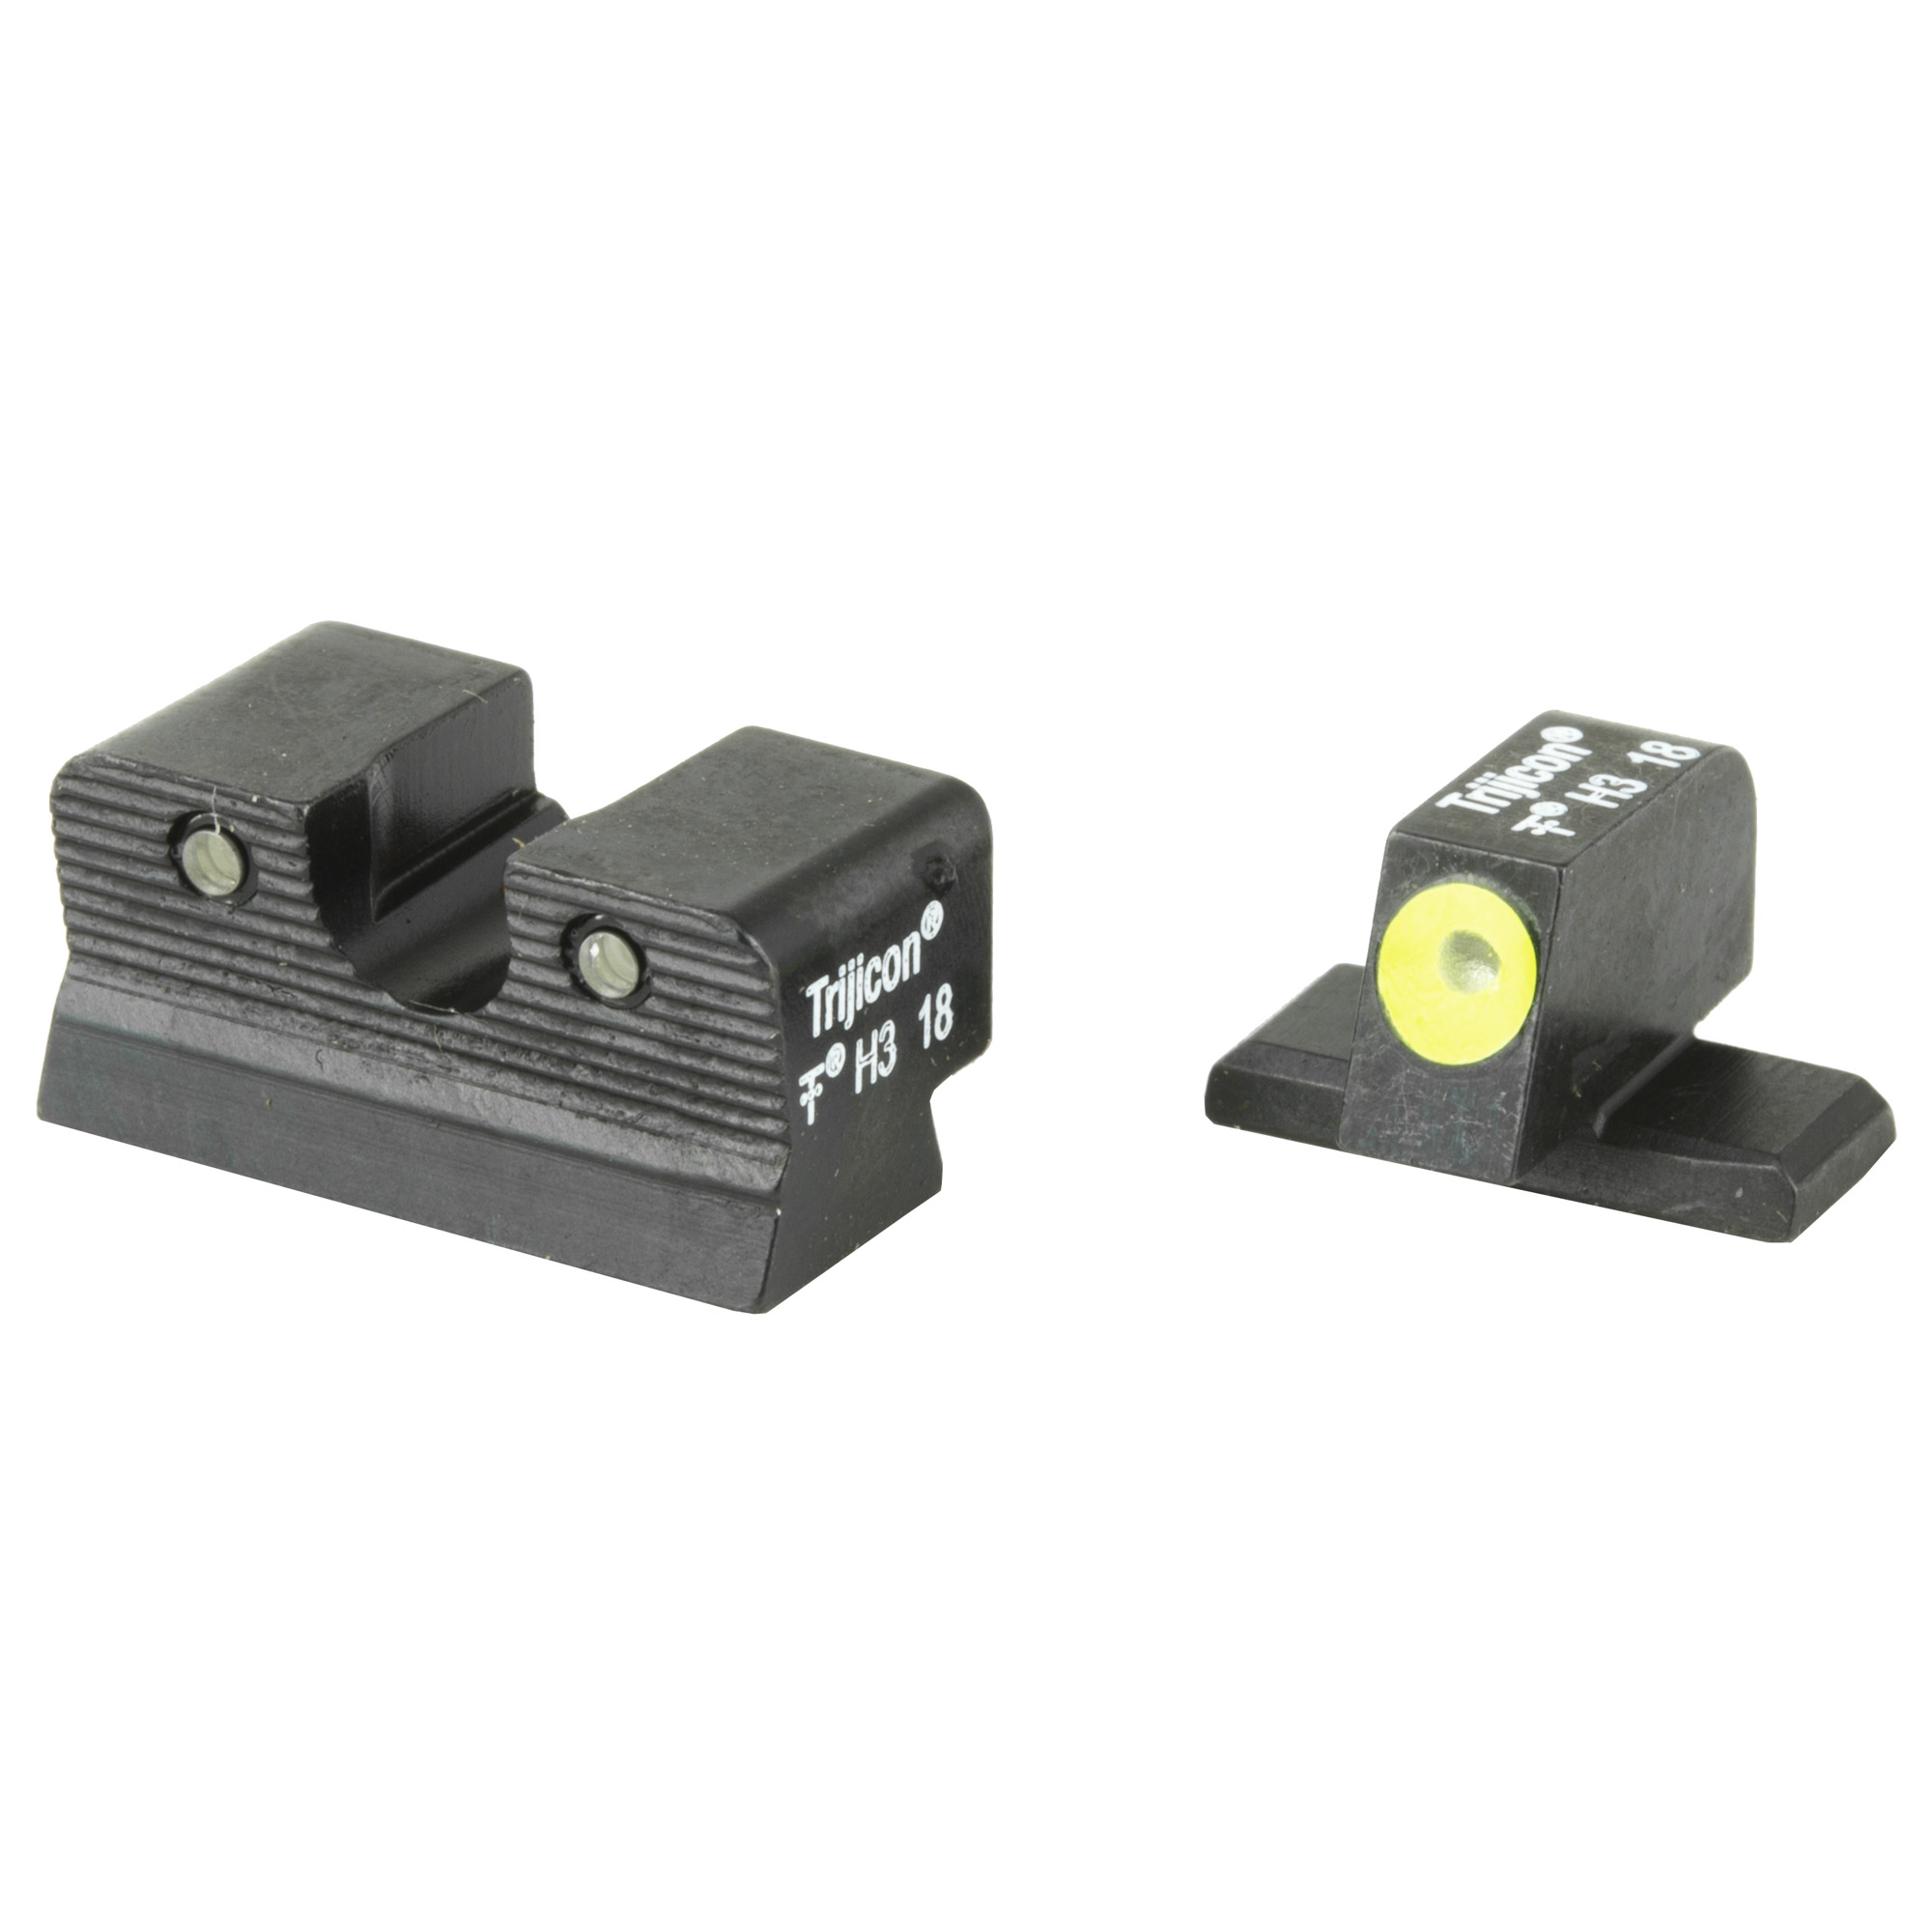 The HD Night Sights were specifically created to address the needs of tactical shooters. The three dot green tritium night sight set's front sight features a taller blade and an aiming point ringed in photoluminescent paint while the rear sight is outlined in black and features a wider U-shaped notch. This unique configuration increases visibility and quickens front sight acquisition-even in transitional lighting.